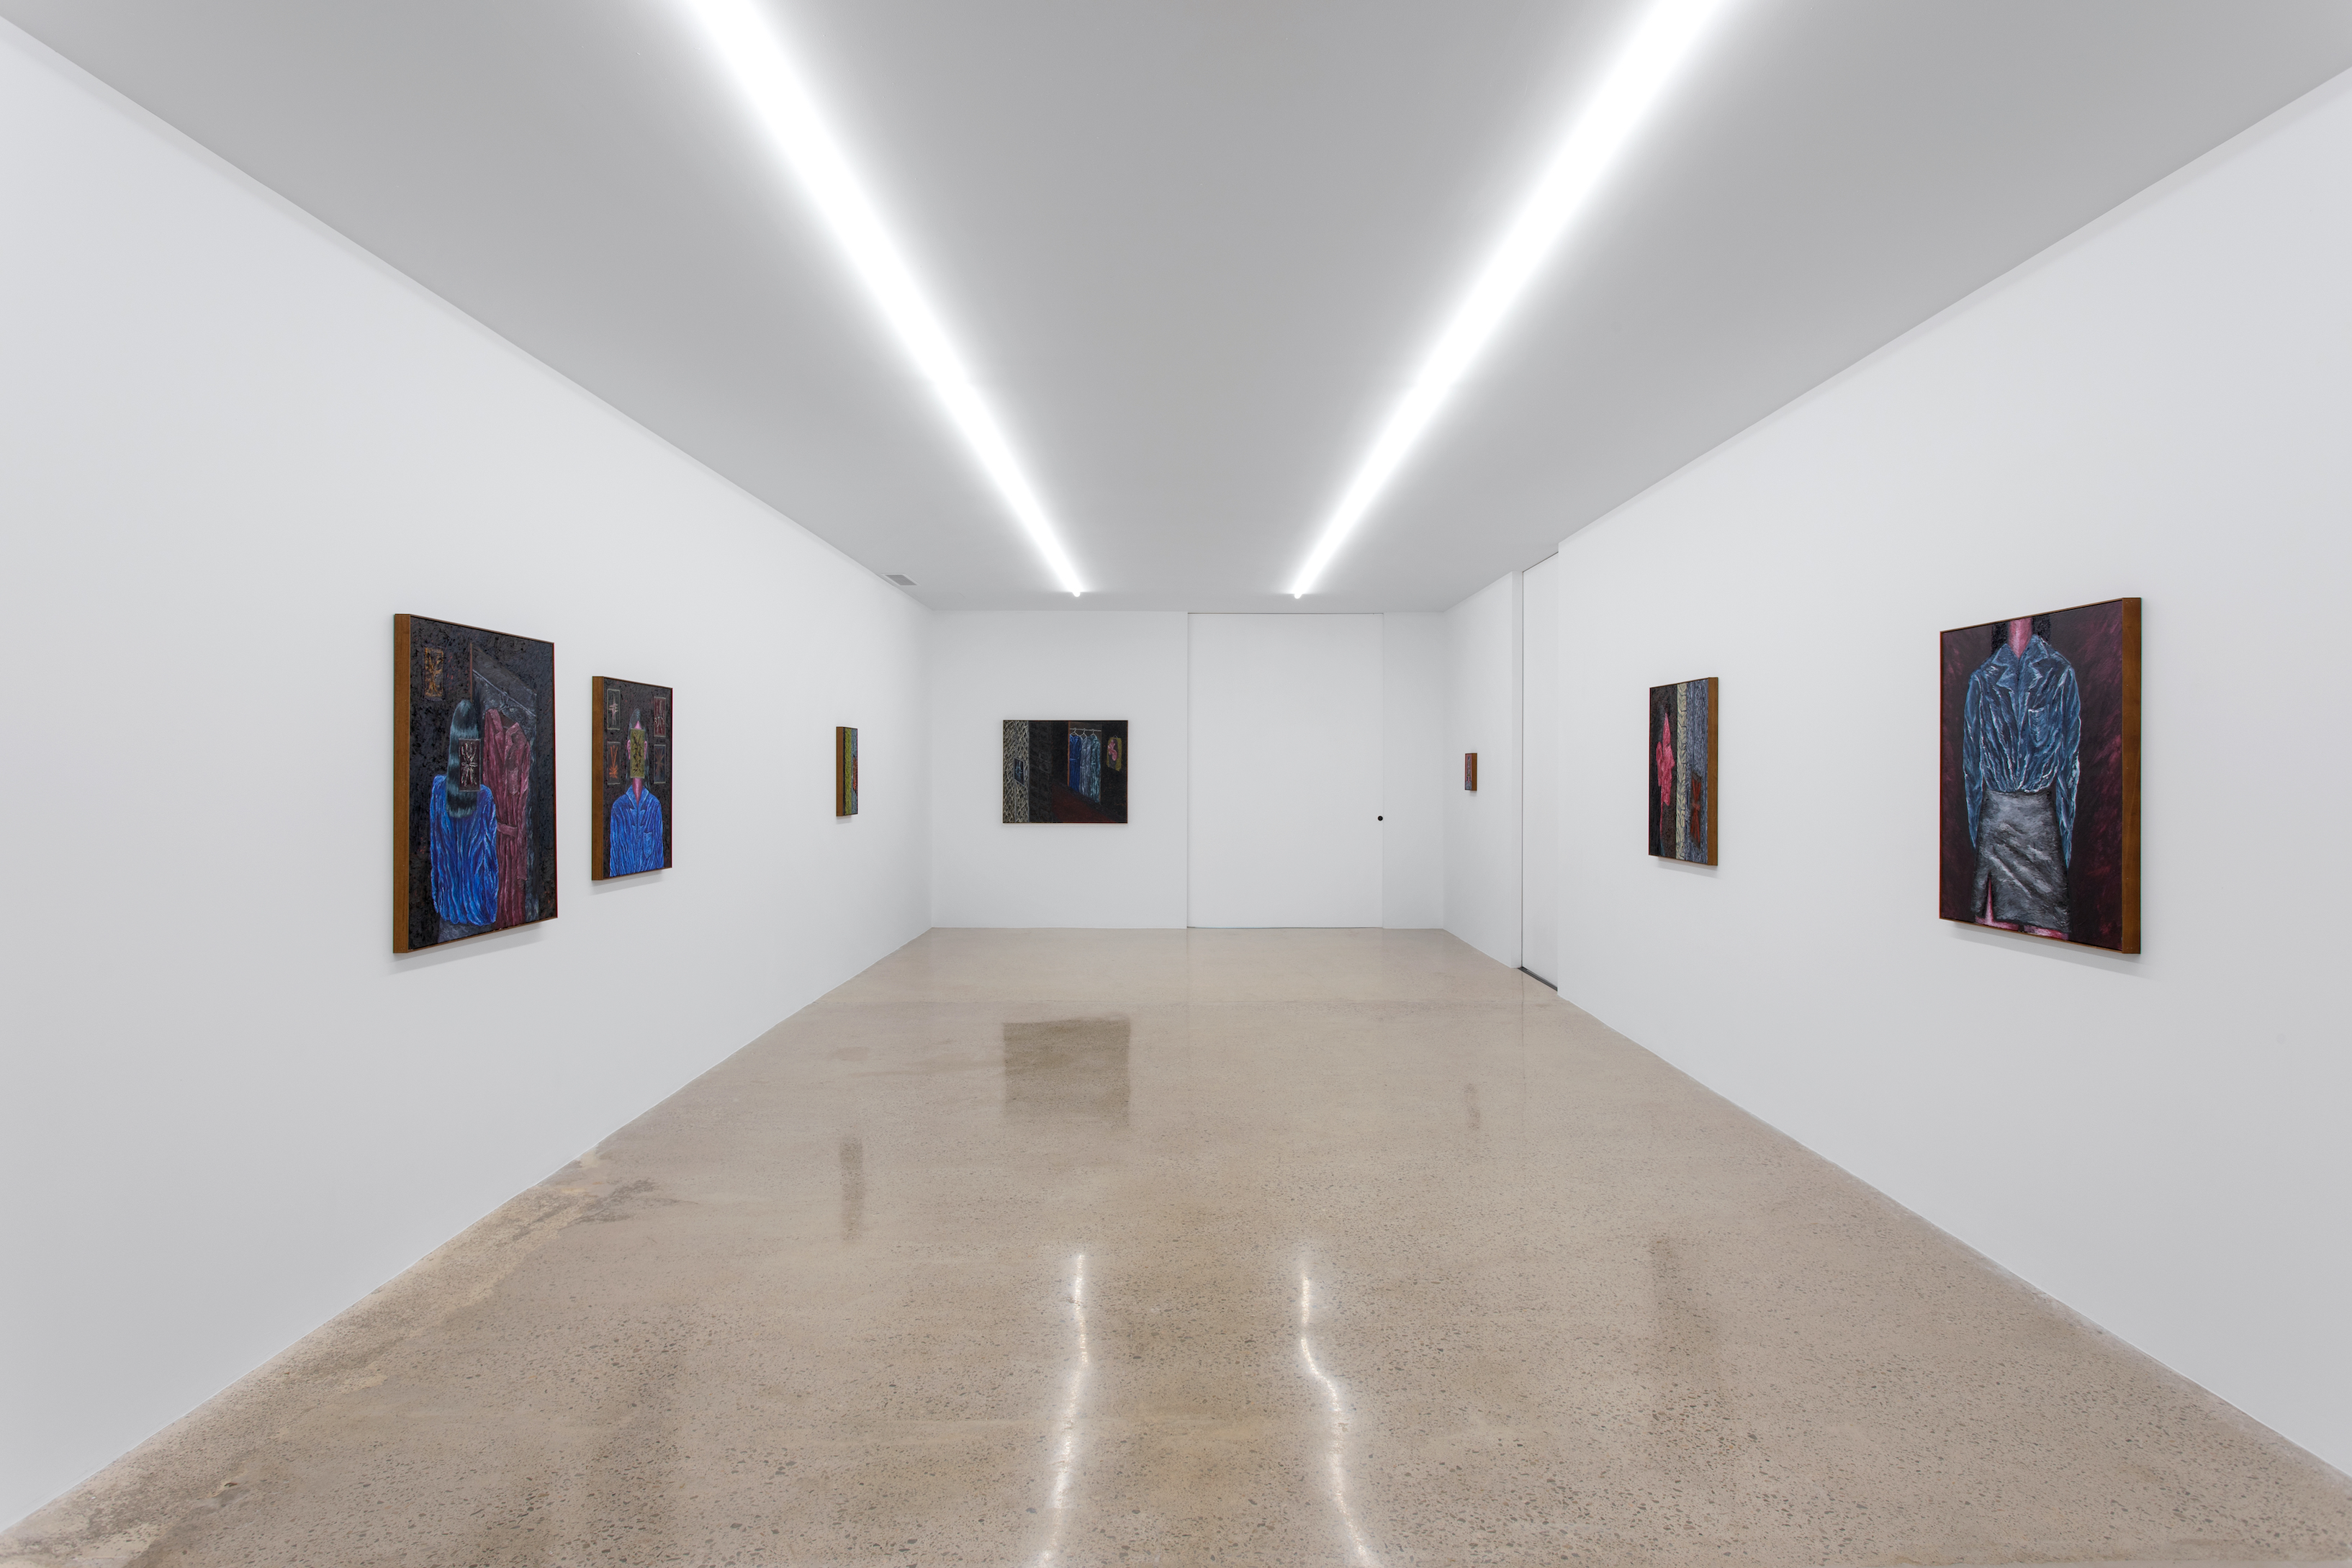 Installation View, Stevie Dix, Sad Girl Surrealism, courtesy of the artist and L21 Gallery, Palma, Islas Baleares, Spain